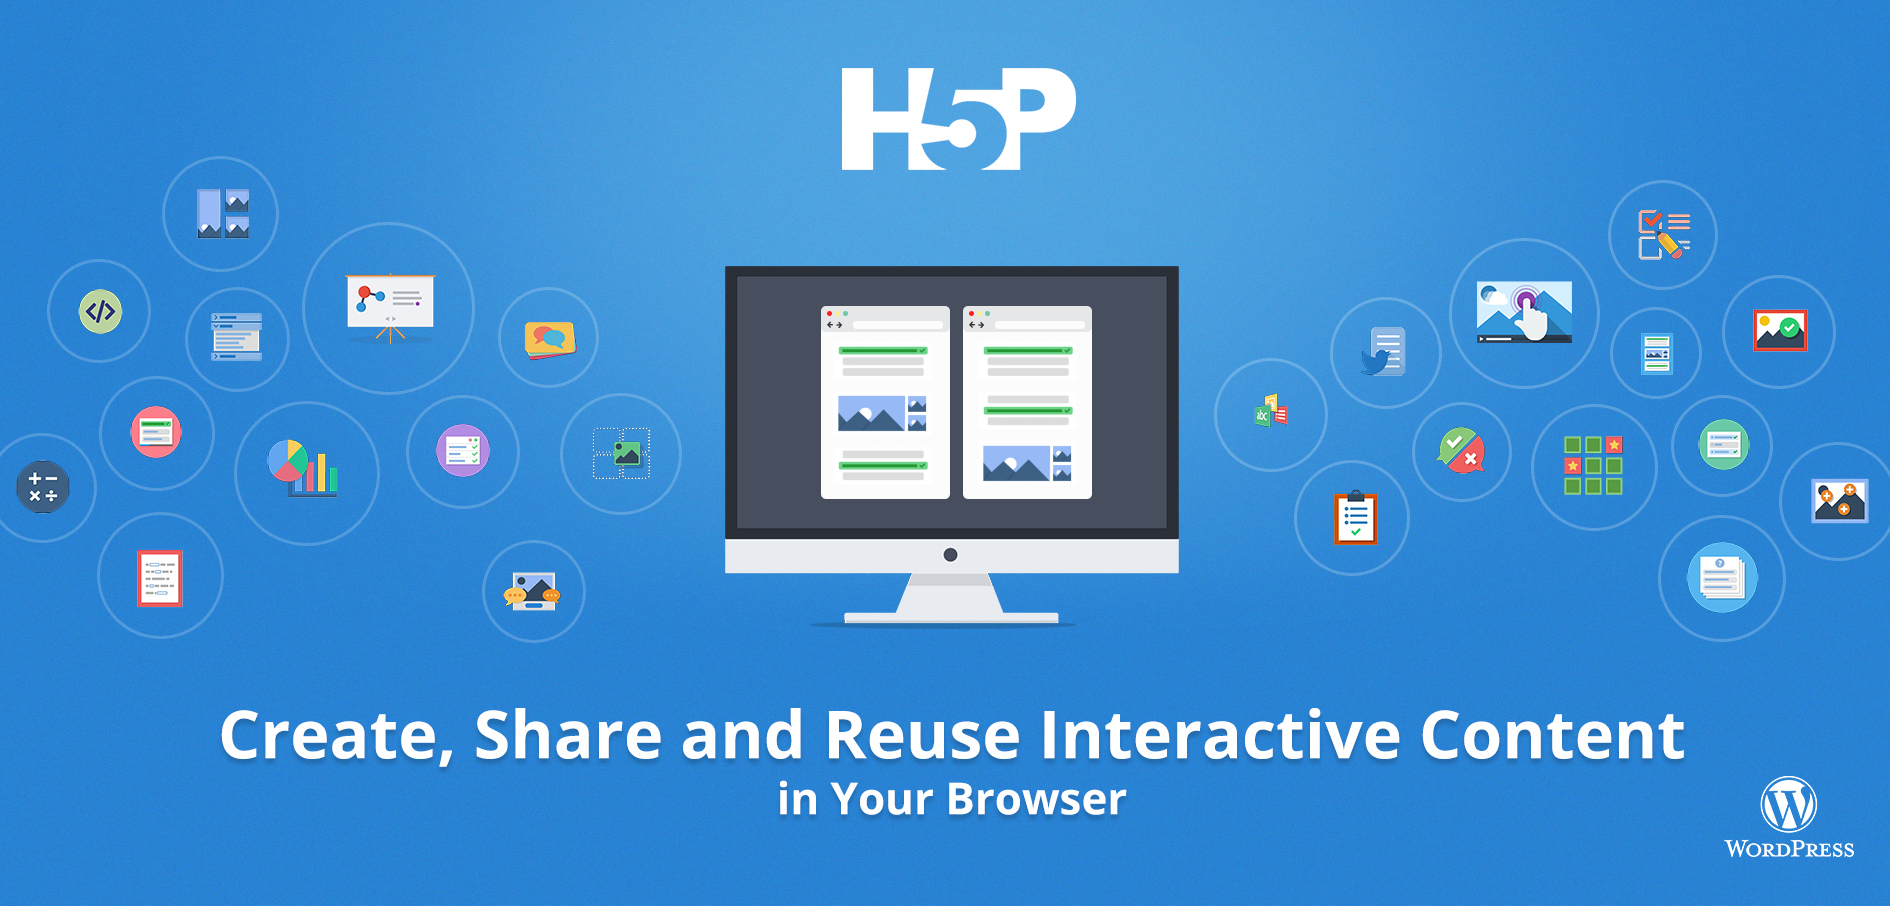 H5P and Wordpress